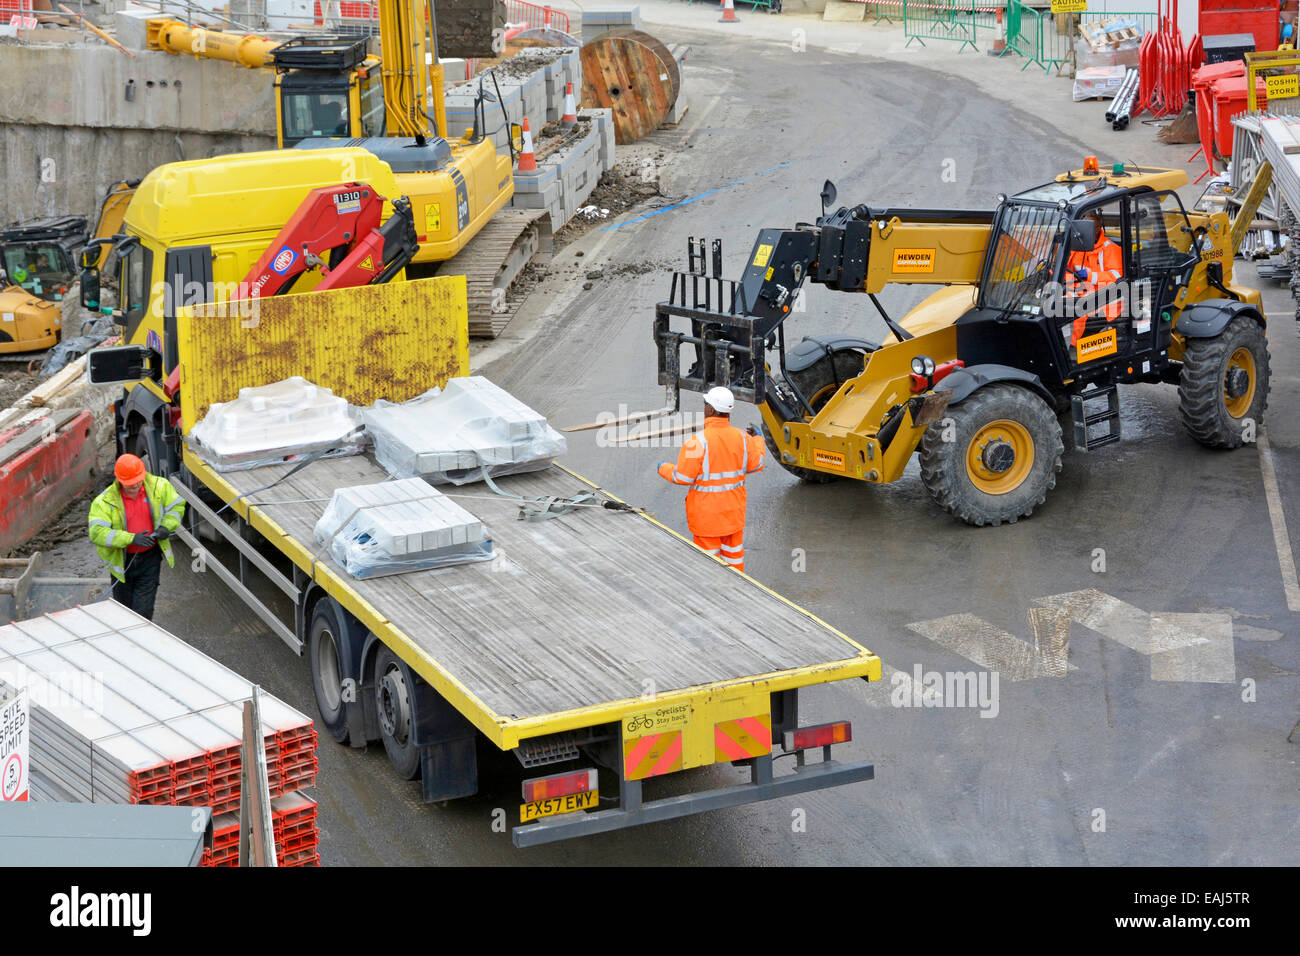 Aerial view building construction site forklift truck to unload flatbed delivery lorry workmen wearing hard hat & high visibility jacket London UK Stock Photo